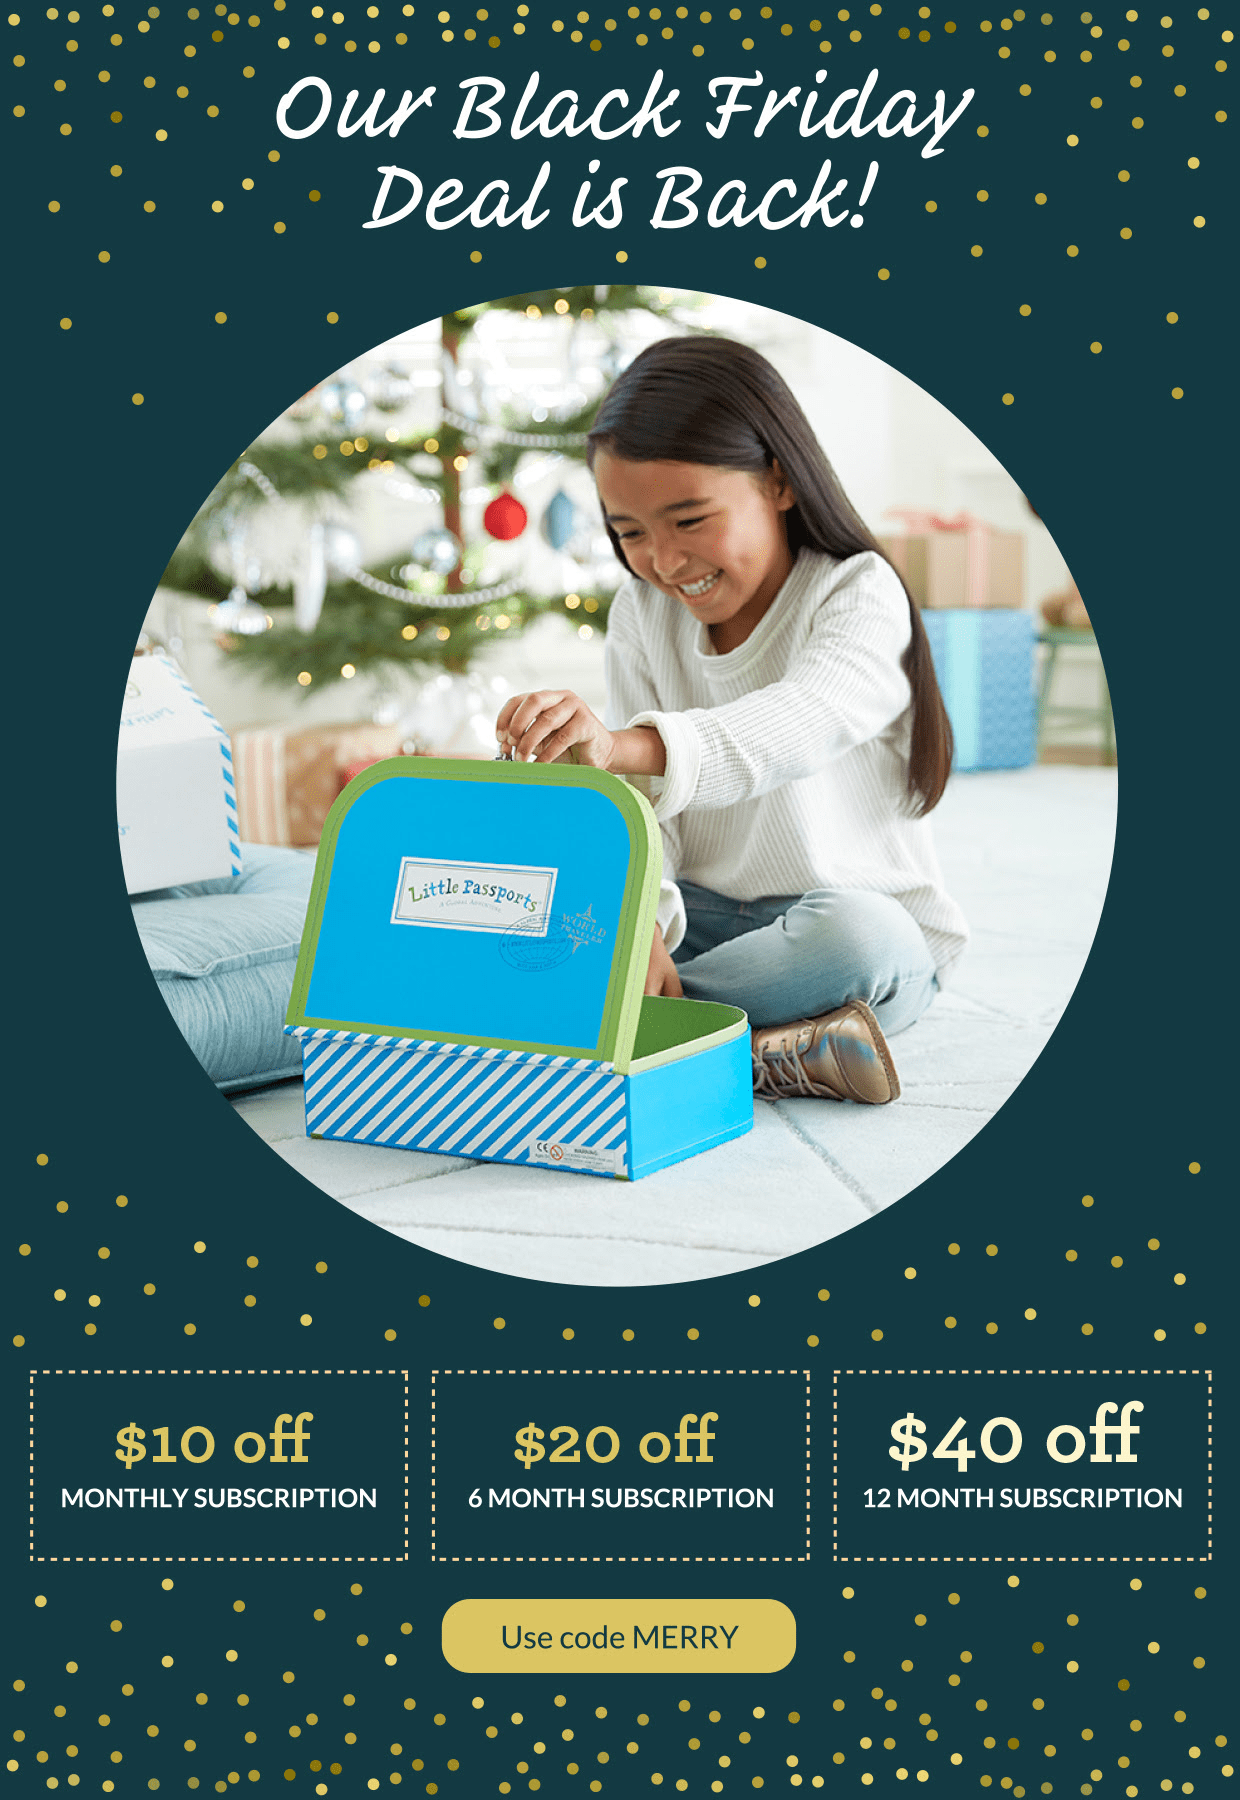 Little Passports Black Friday Is BACK: Get Up $40 Off! LAST DAY!